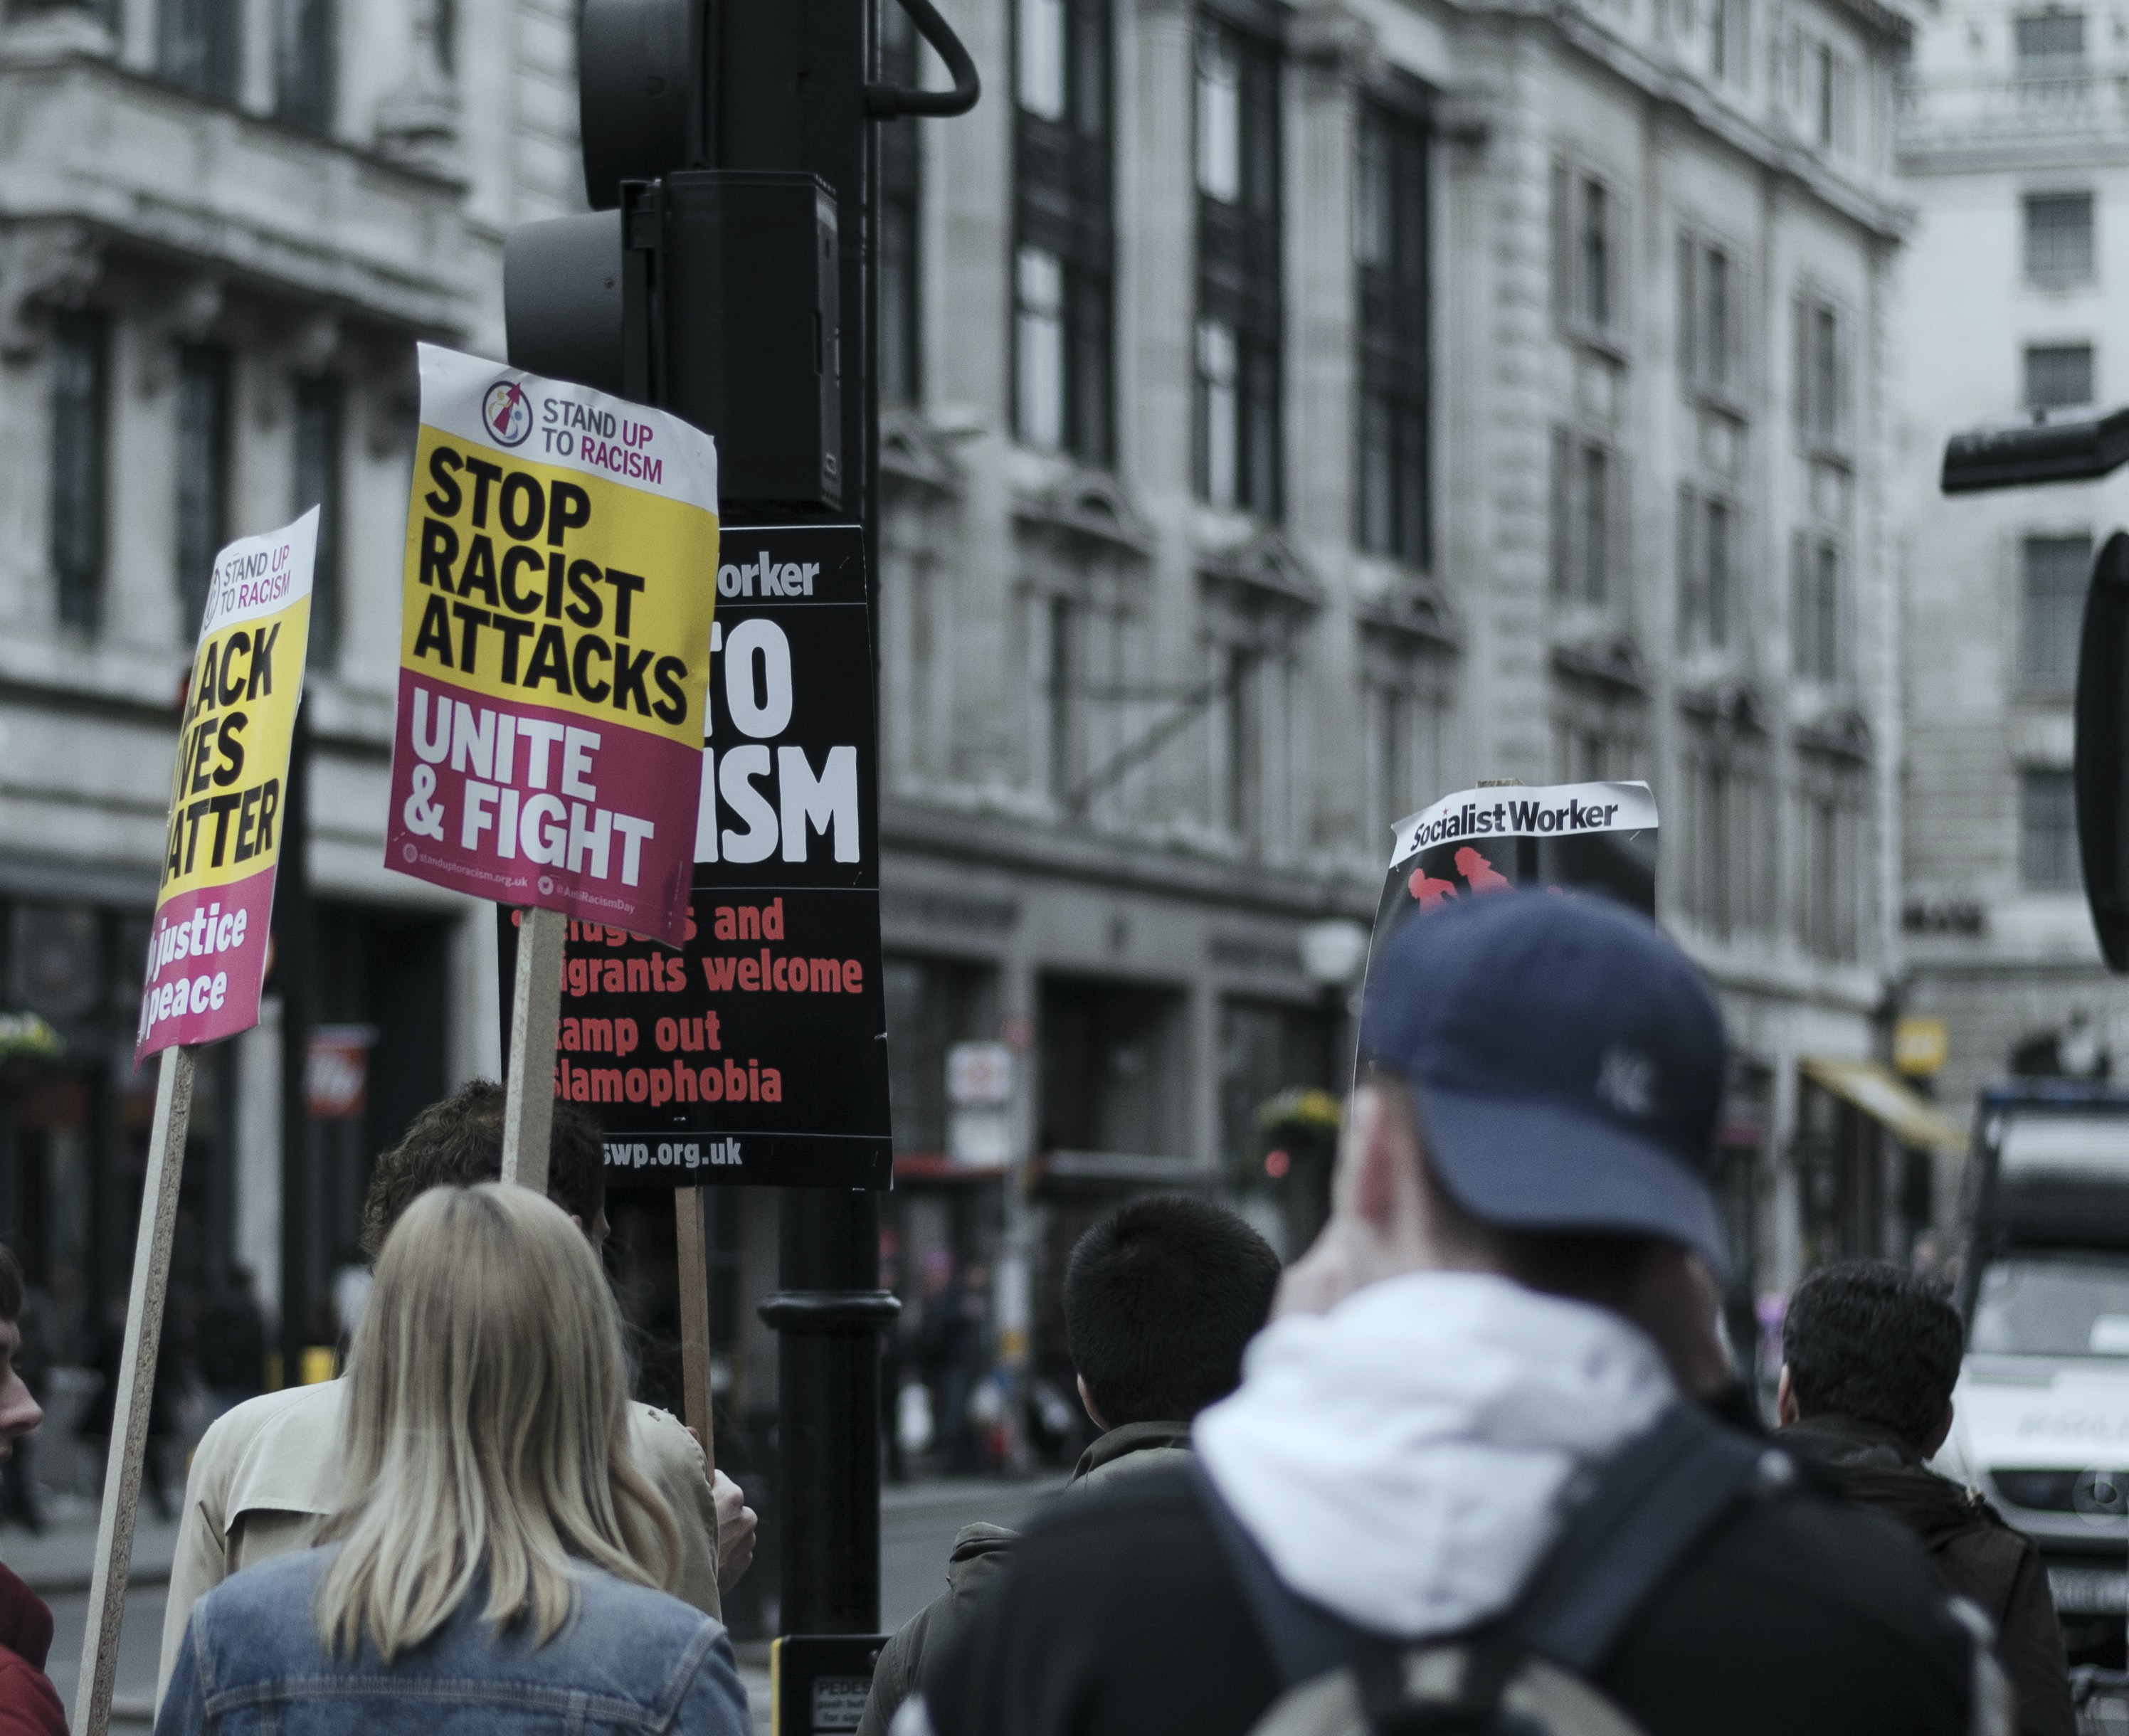 People with protest signs in Oxford Street, London